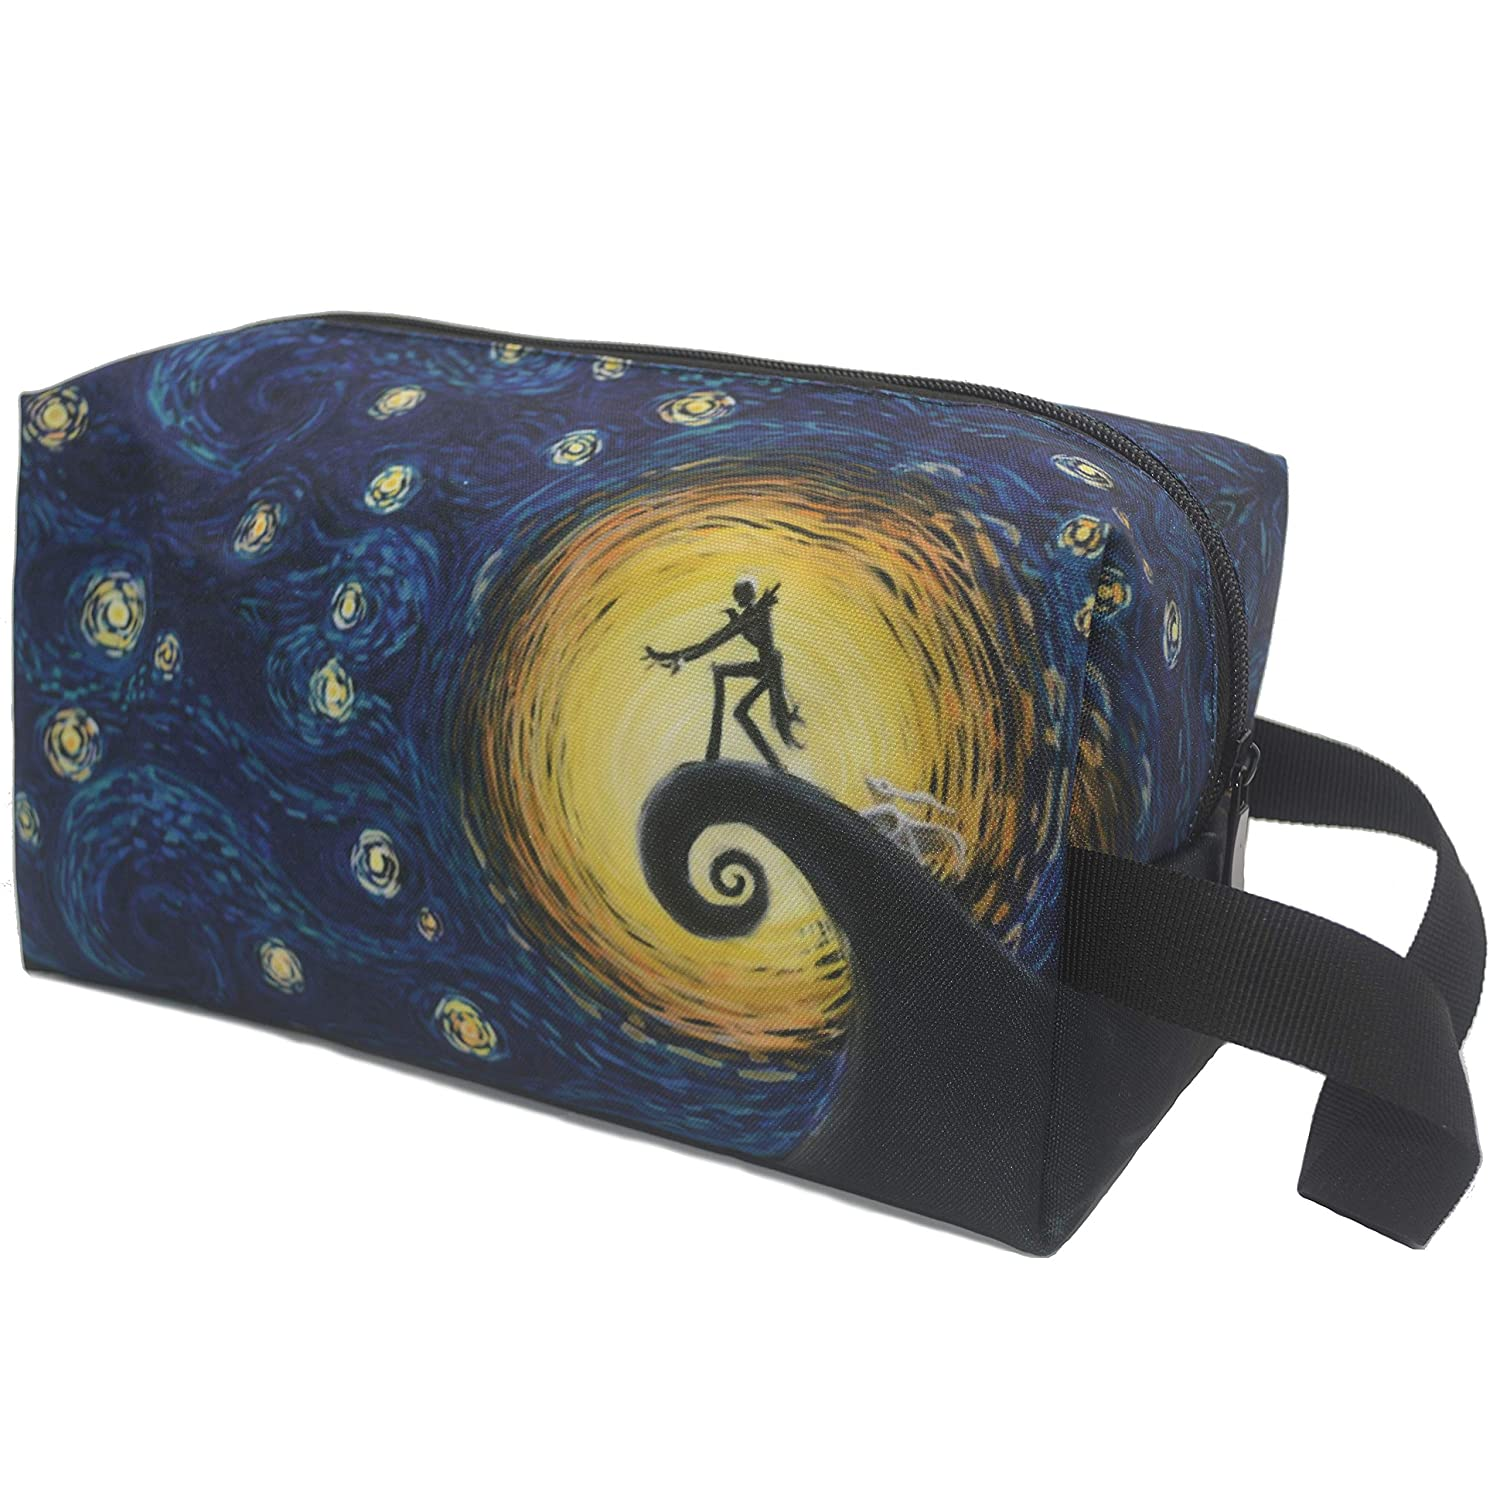 Makeup Bag Nightmare Before Christmas The Starry Night Travel Toiletry Bag Large Capacity Cosmetic Bag Pouch Portable Organizer for Women Men